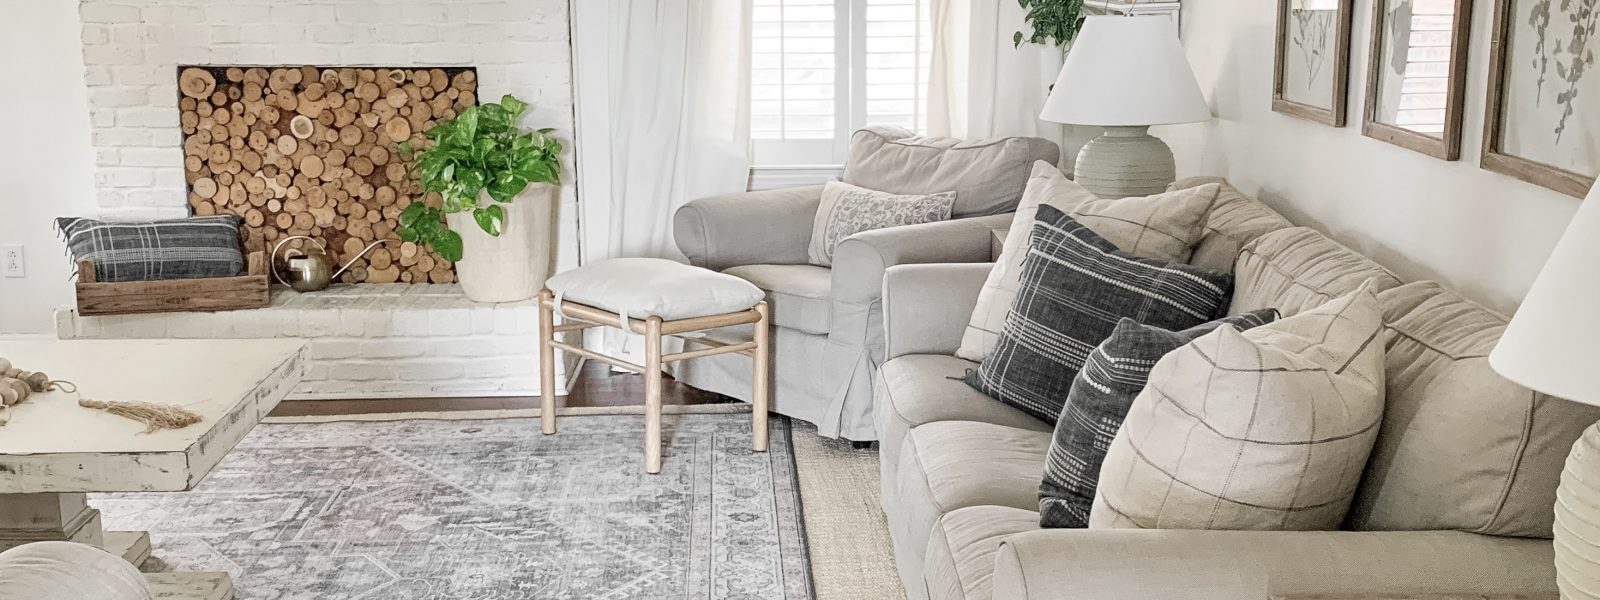 New Printed Rug + Spring Living Room Tour